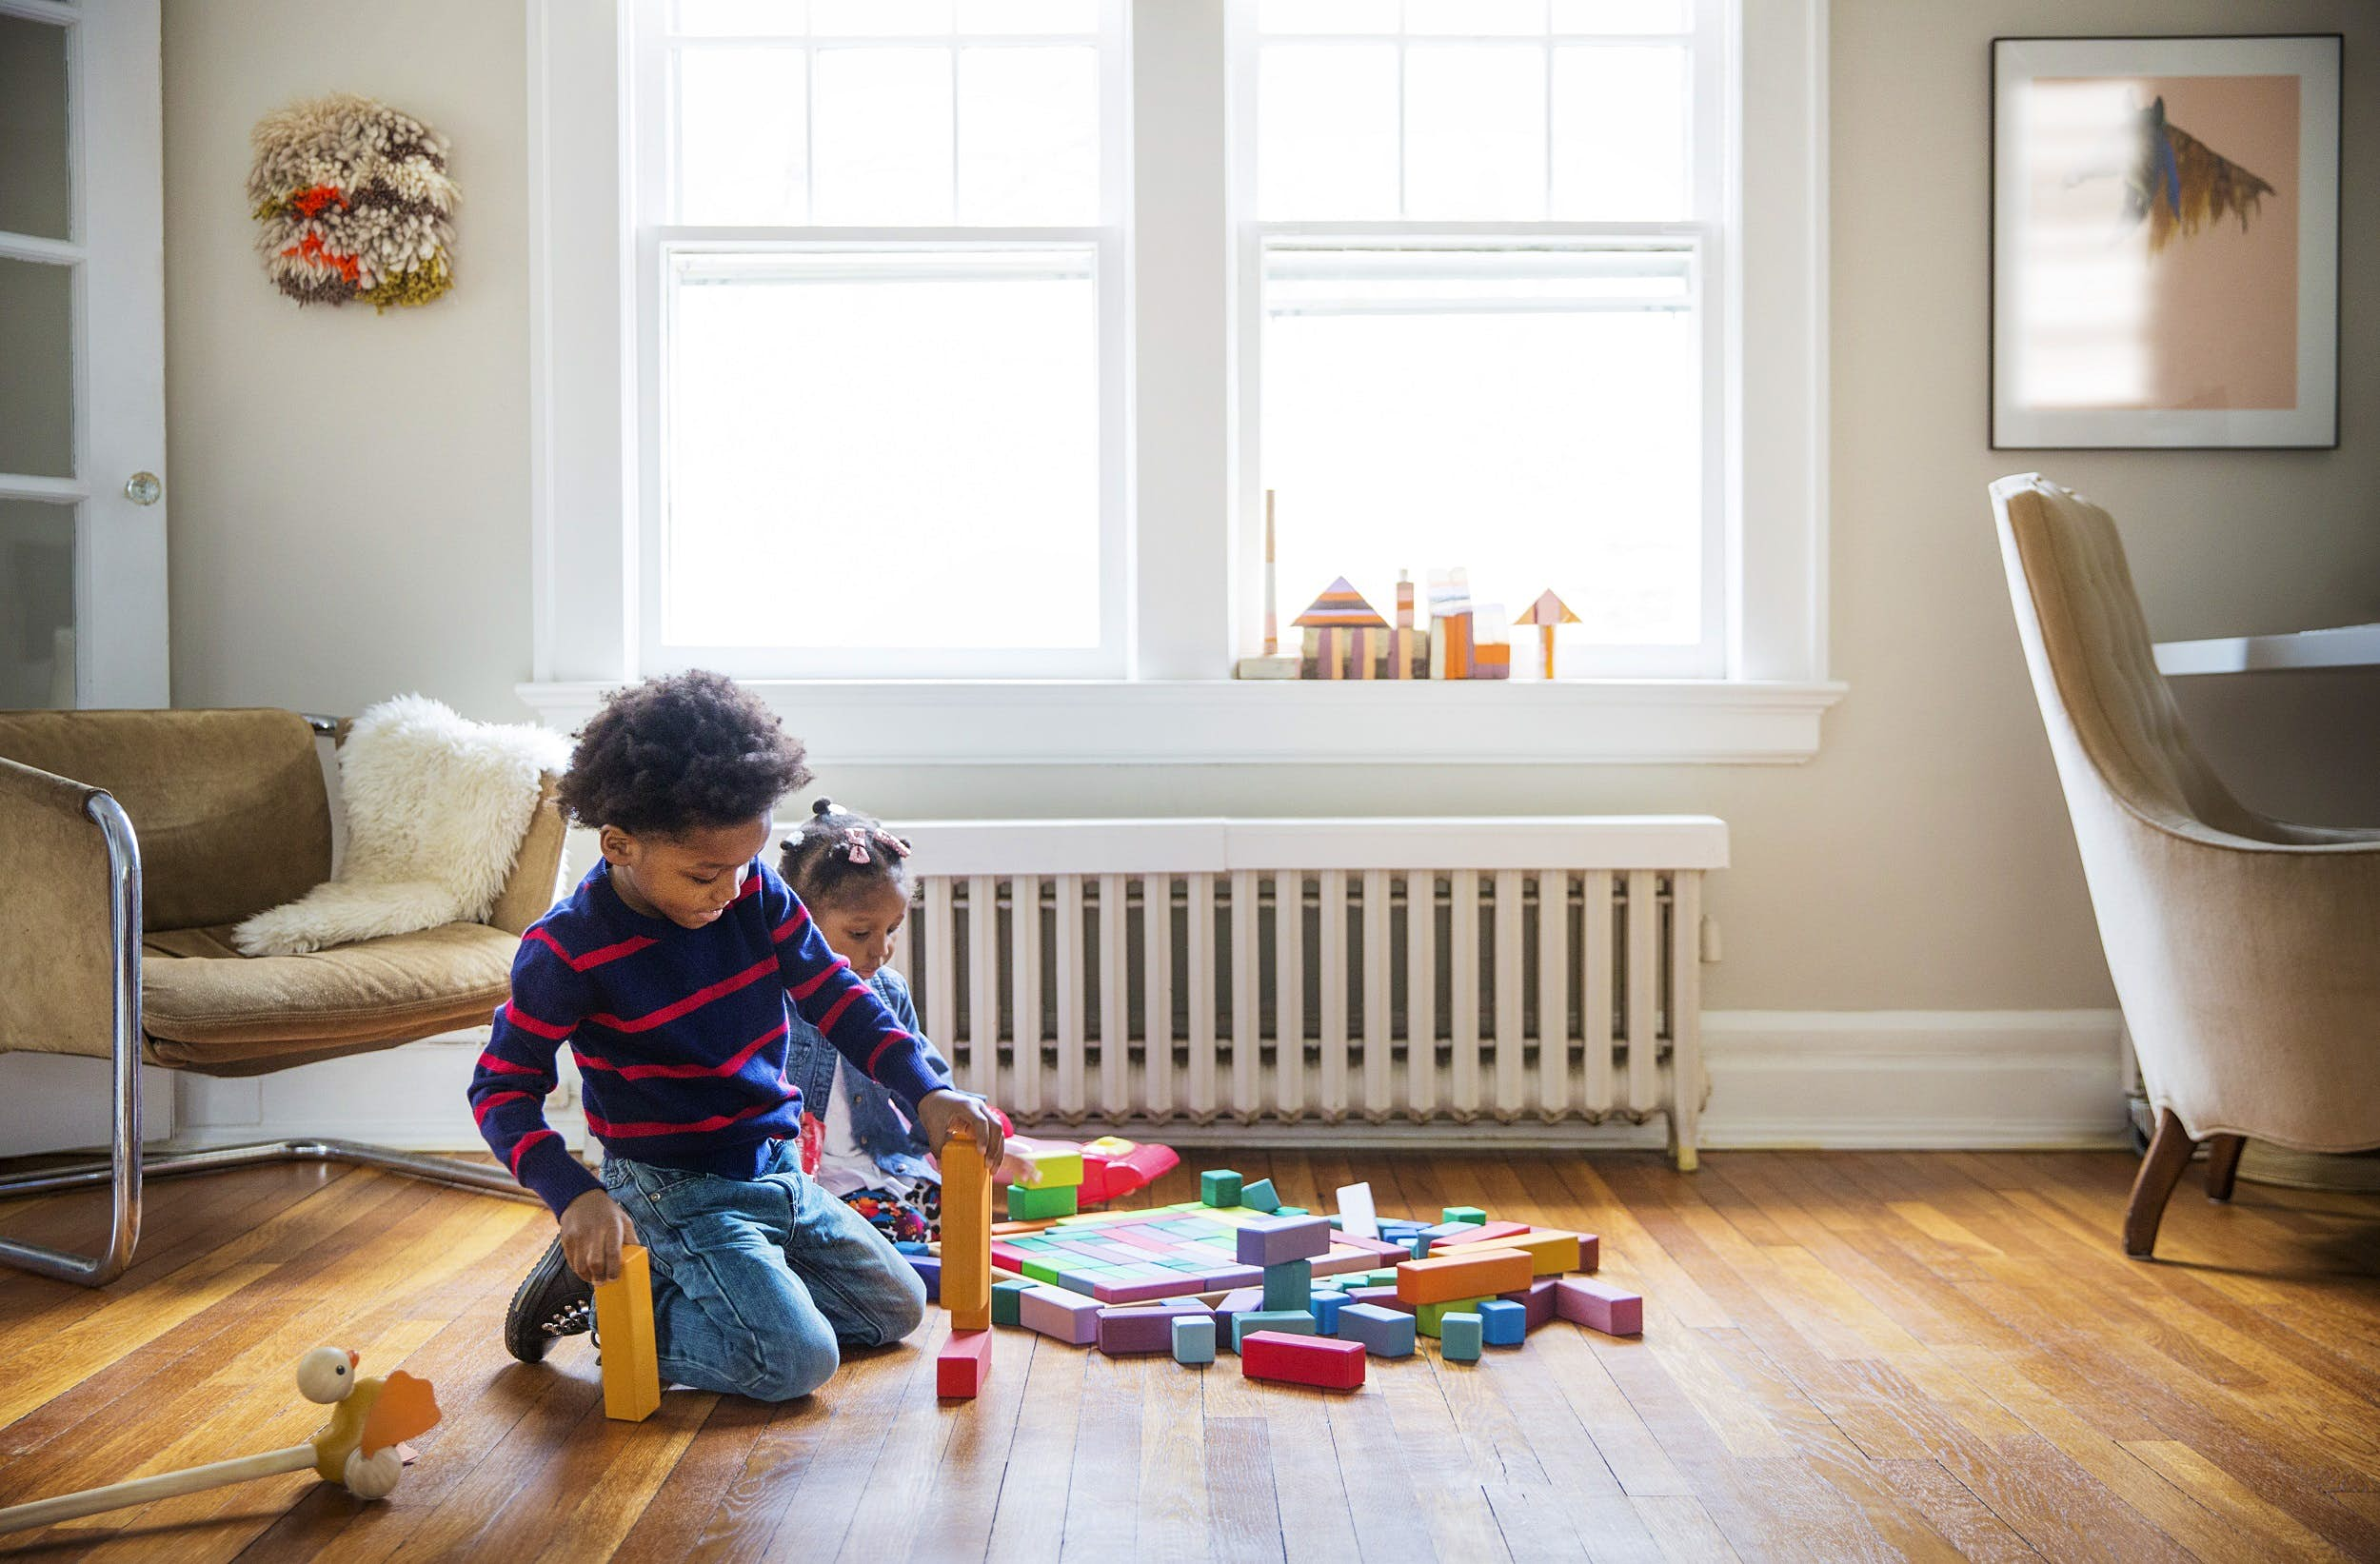 Two young children sit on a wooden floor surrounded by colourful blocks. The oldest child has built a tower